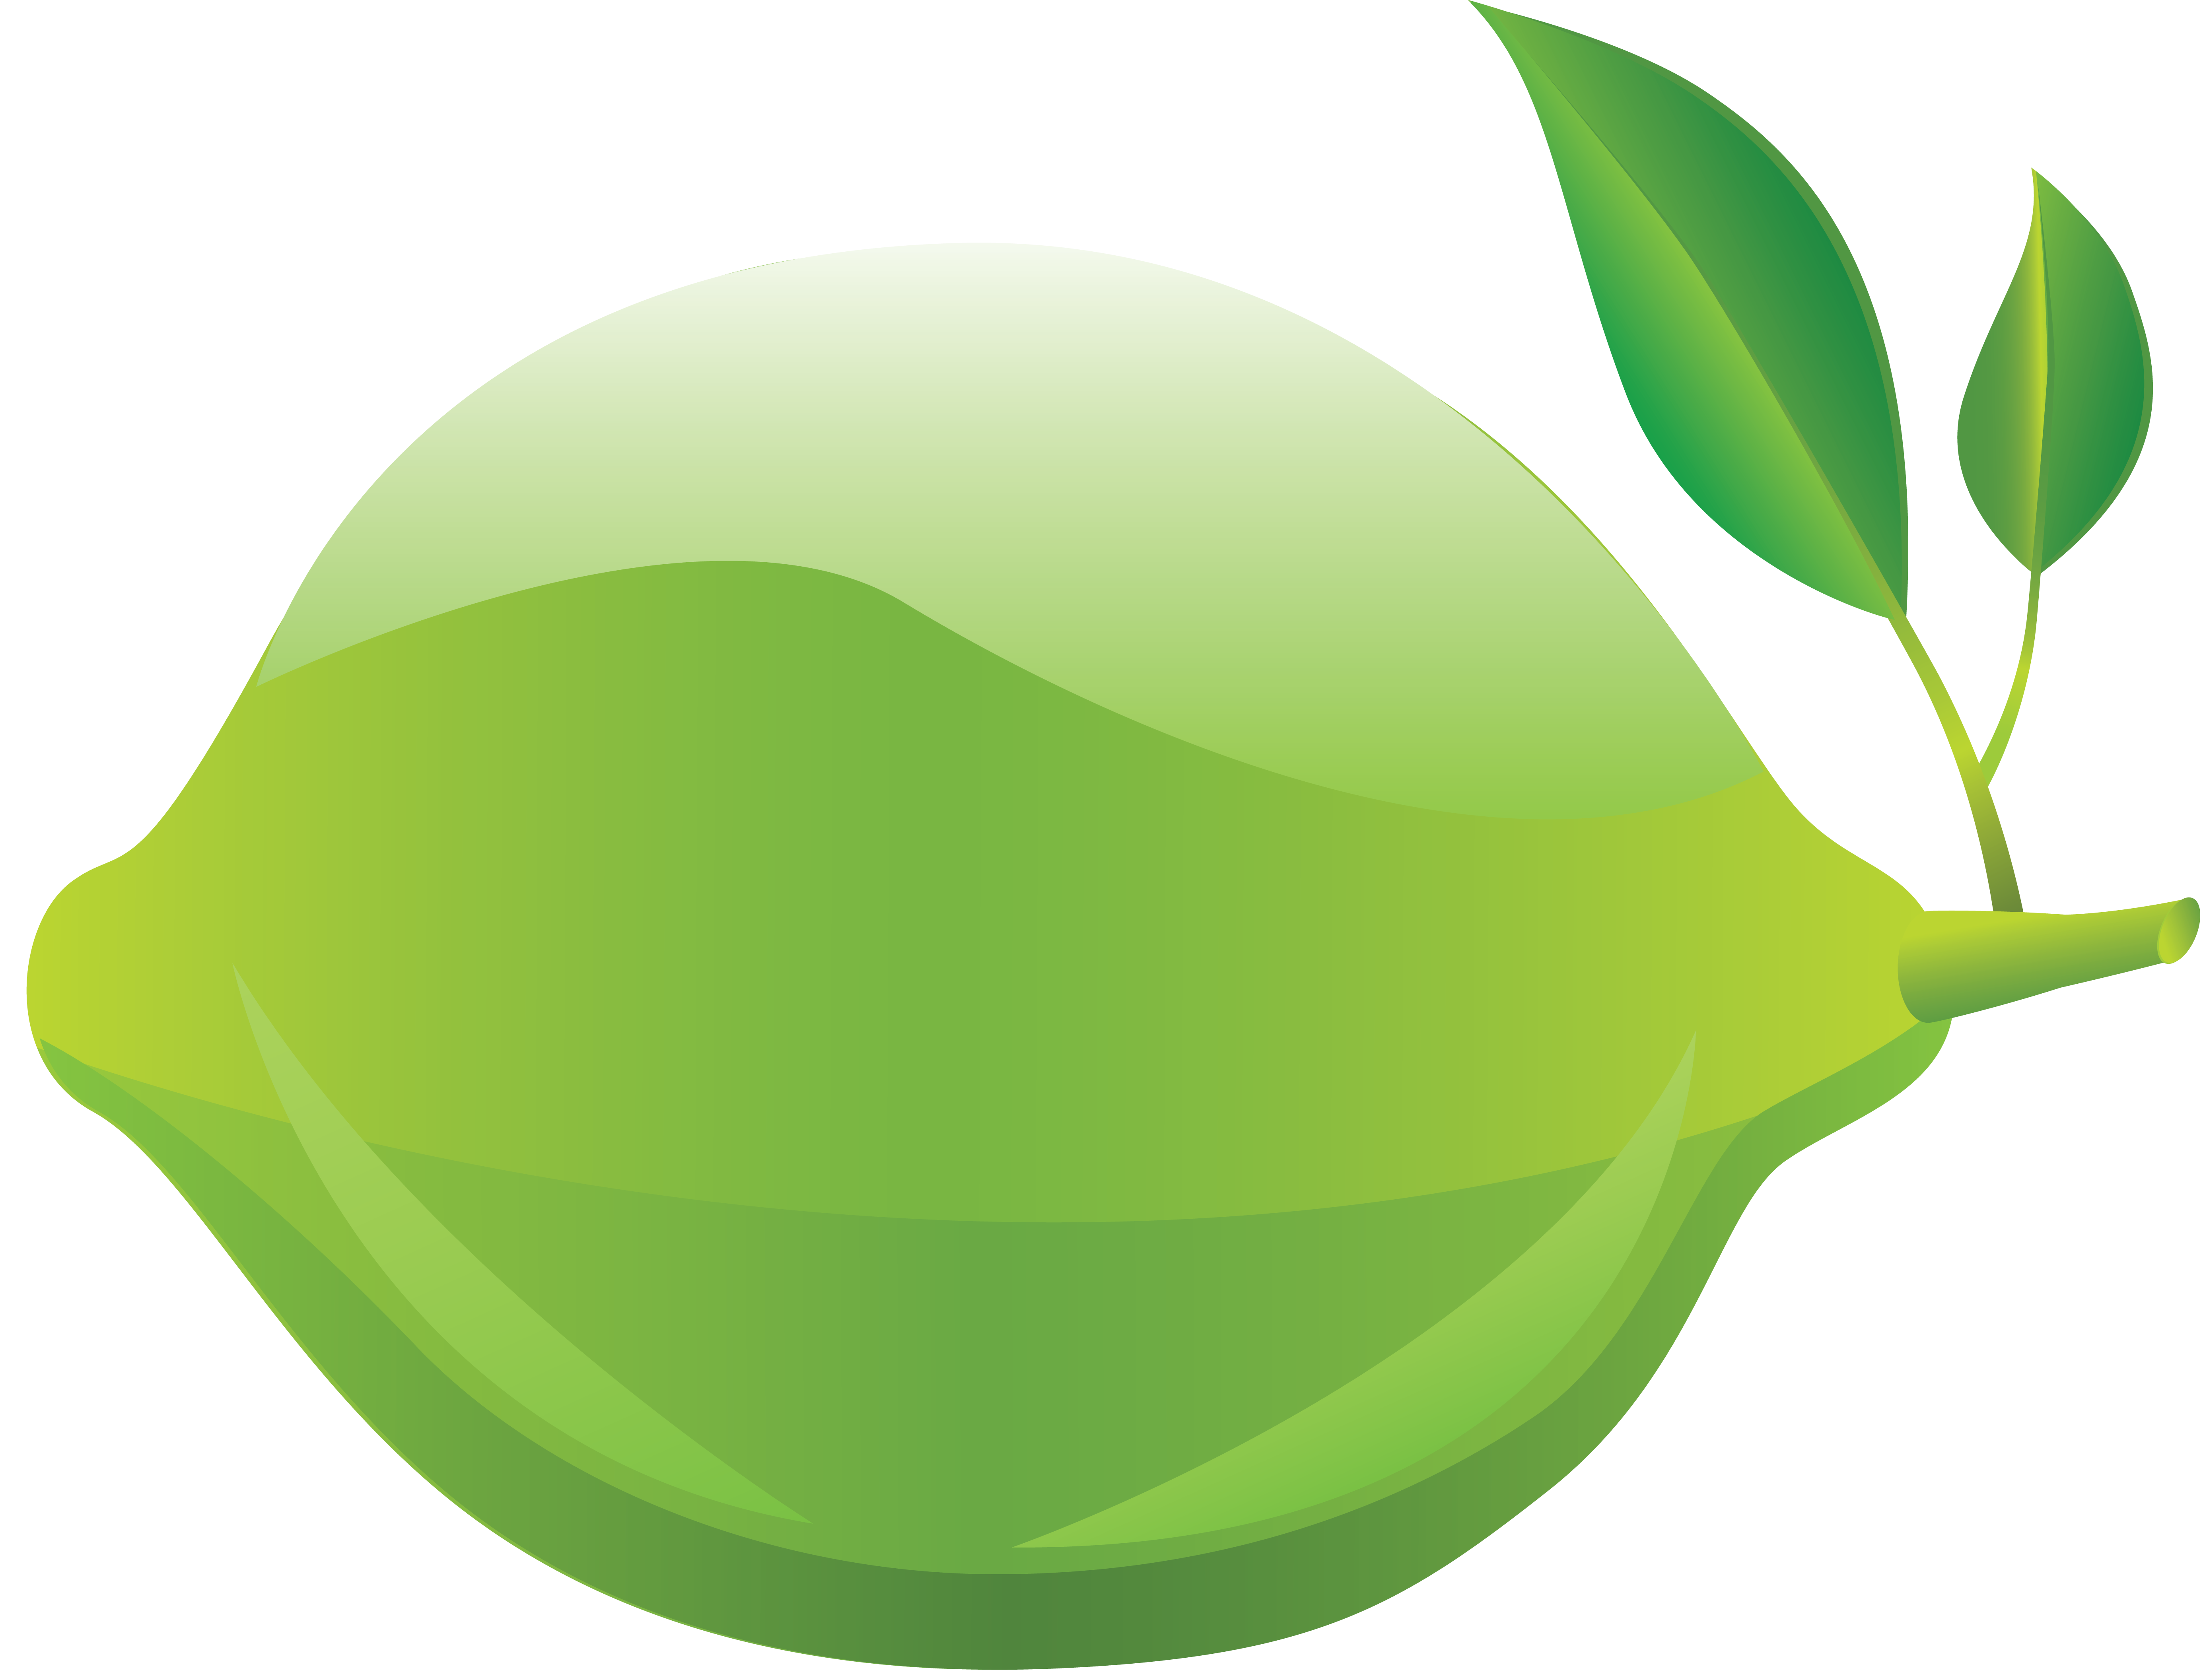 Lime PNG images free download